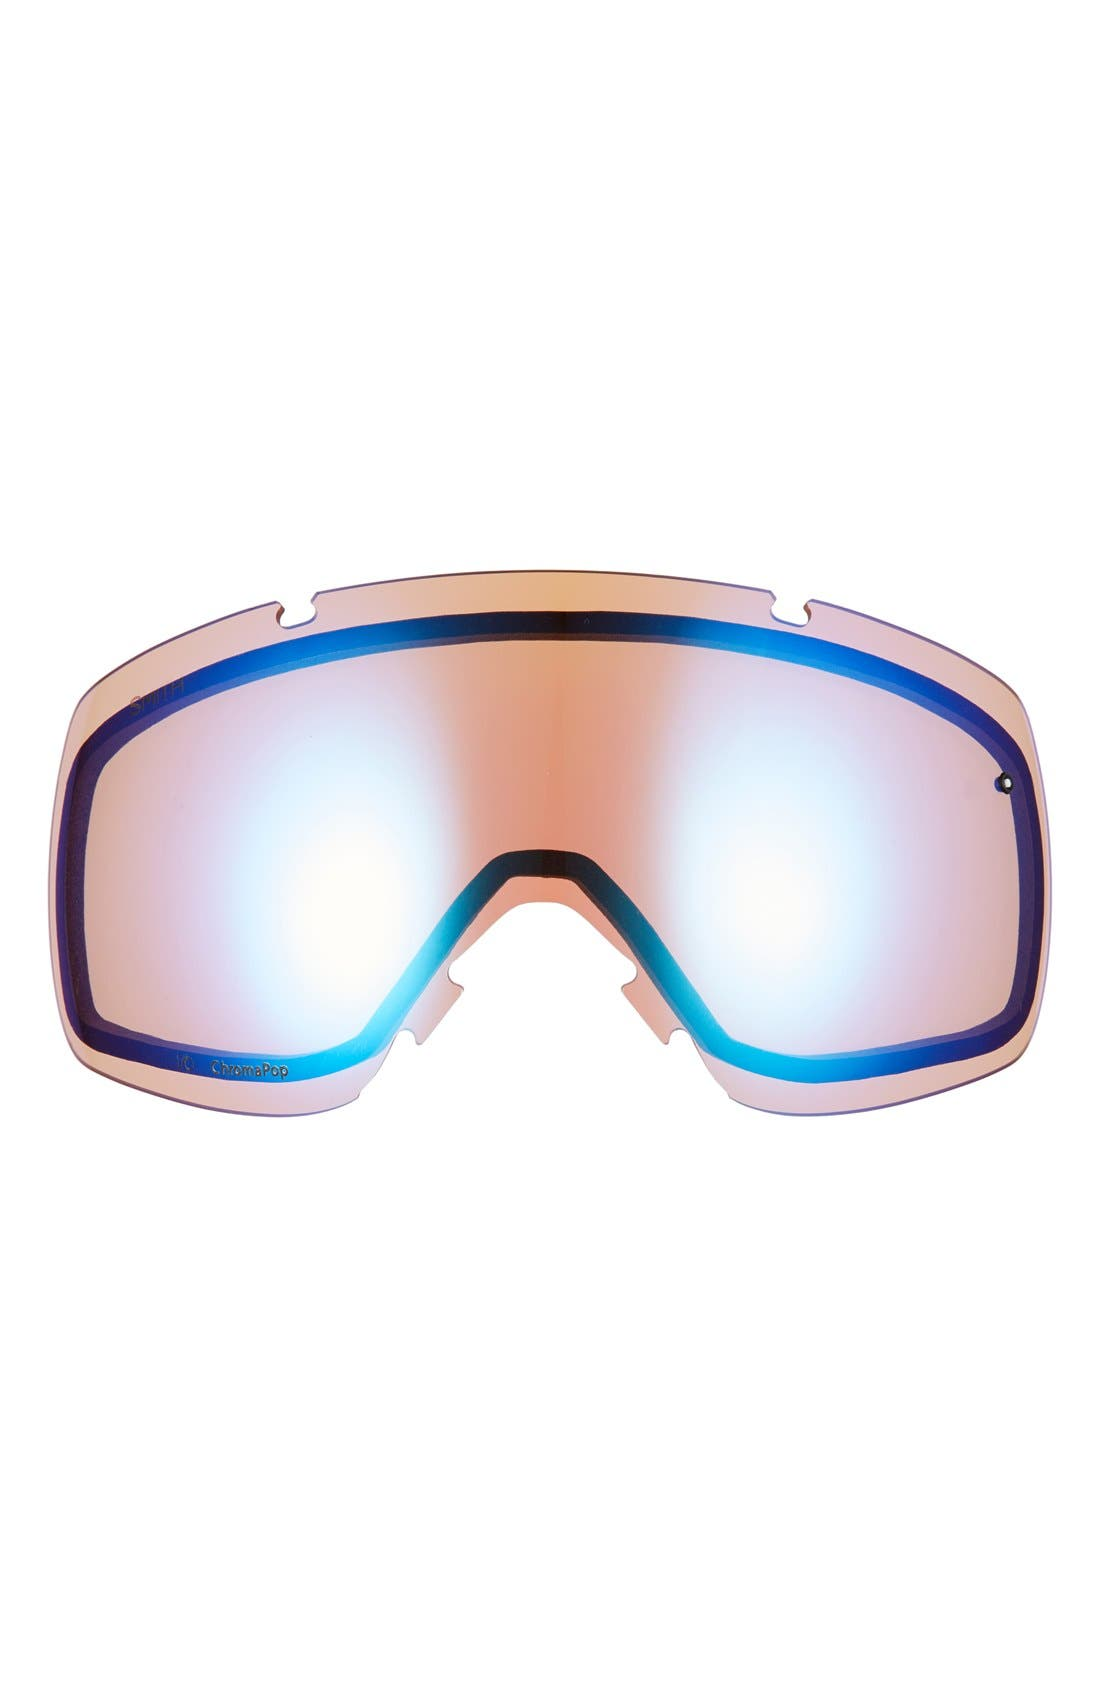 I/O 205mm Snow Goggles,                             Alternate thumbnail 2, color,                             Navy Scout